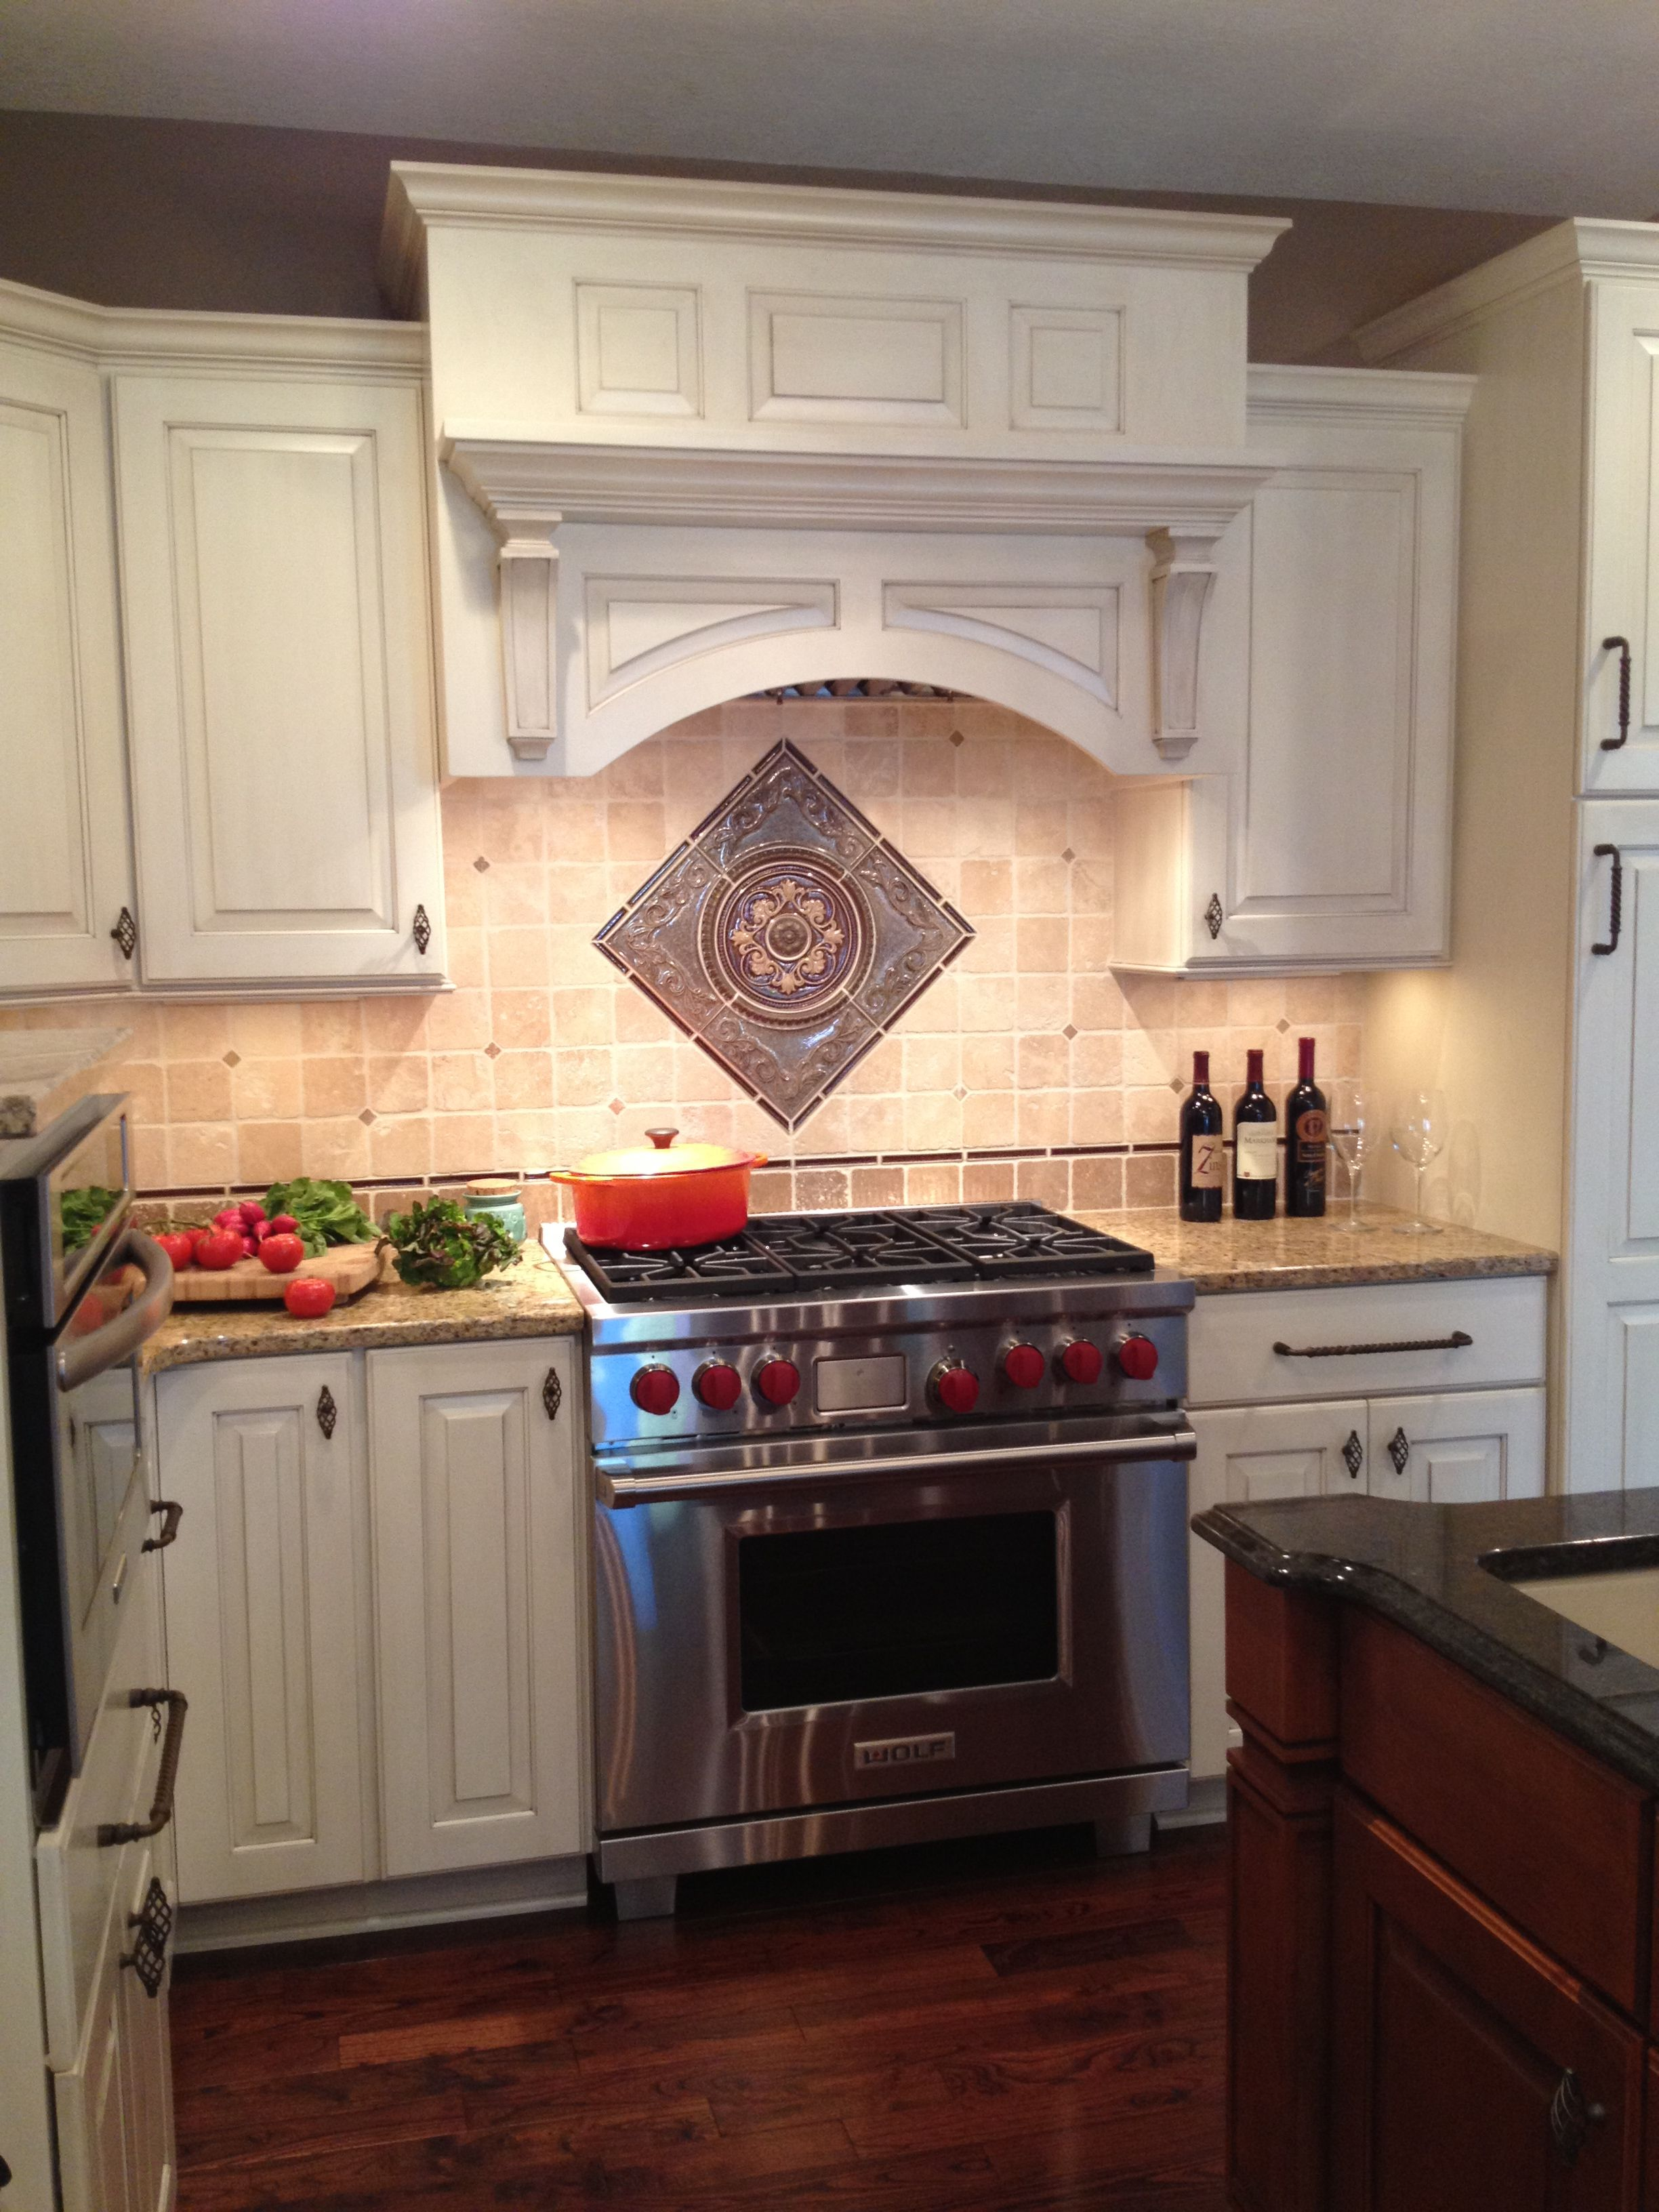 Powell ohio kitchen remodel features a tumbled stone backsplash powell ohio kitchen remodel features a tumbled stone backsplash with sonoma tilemakers medallion and deco stripe dailygadgetfo Choice Image